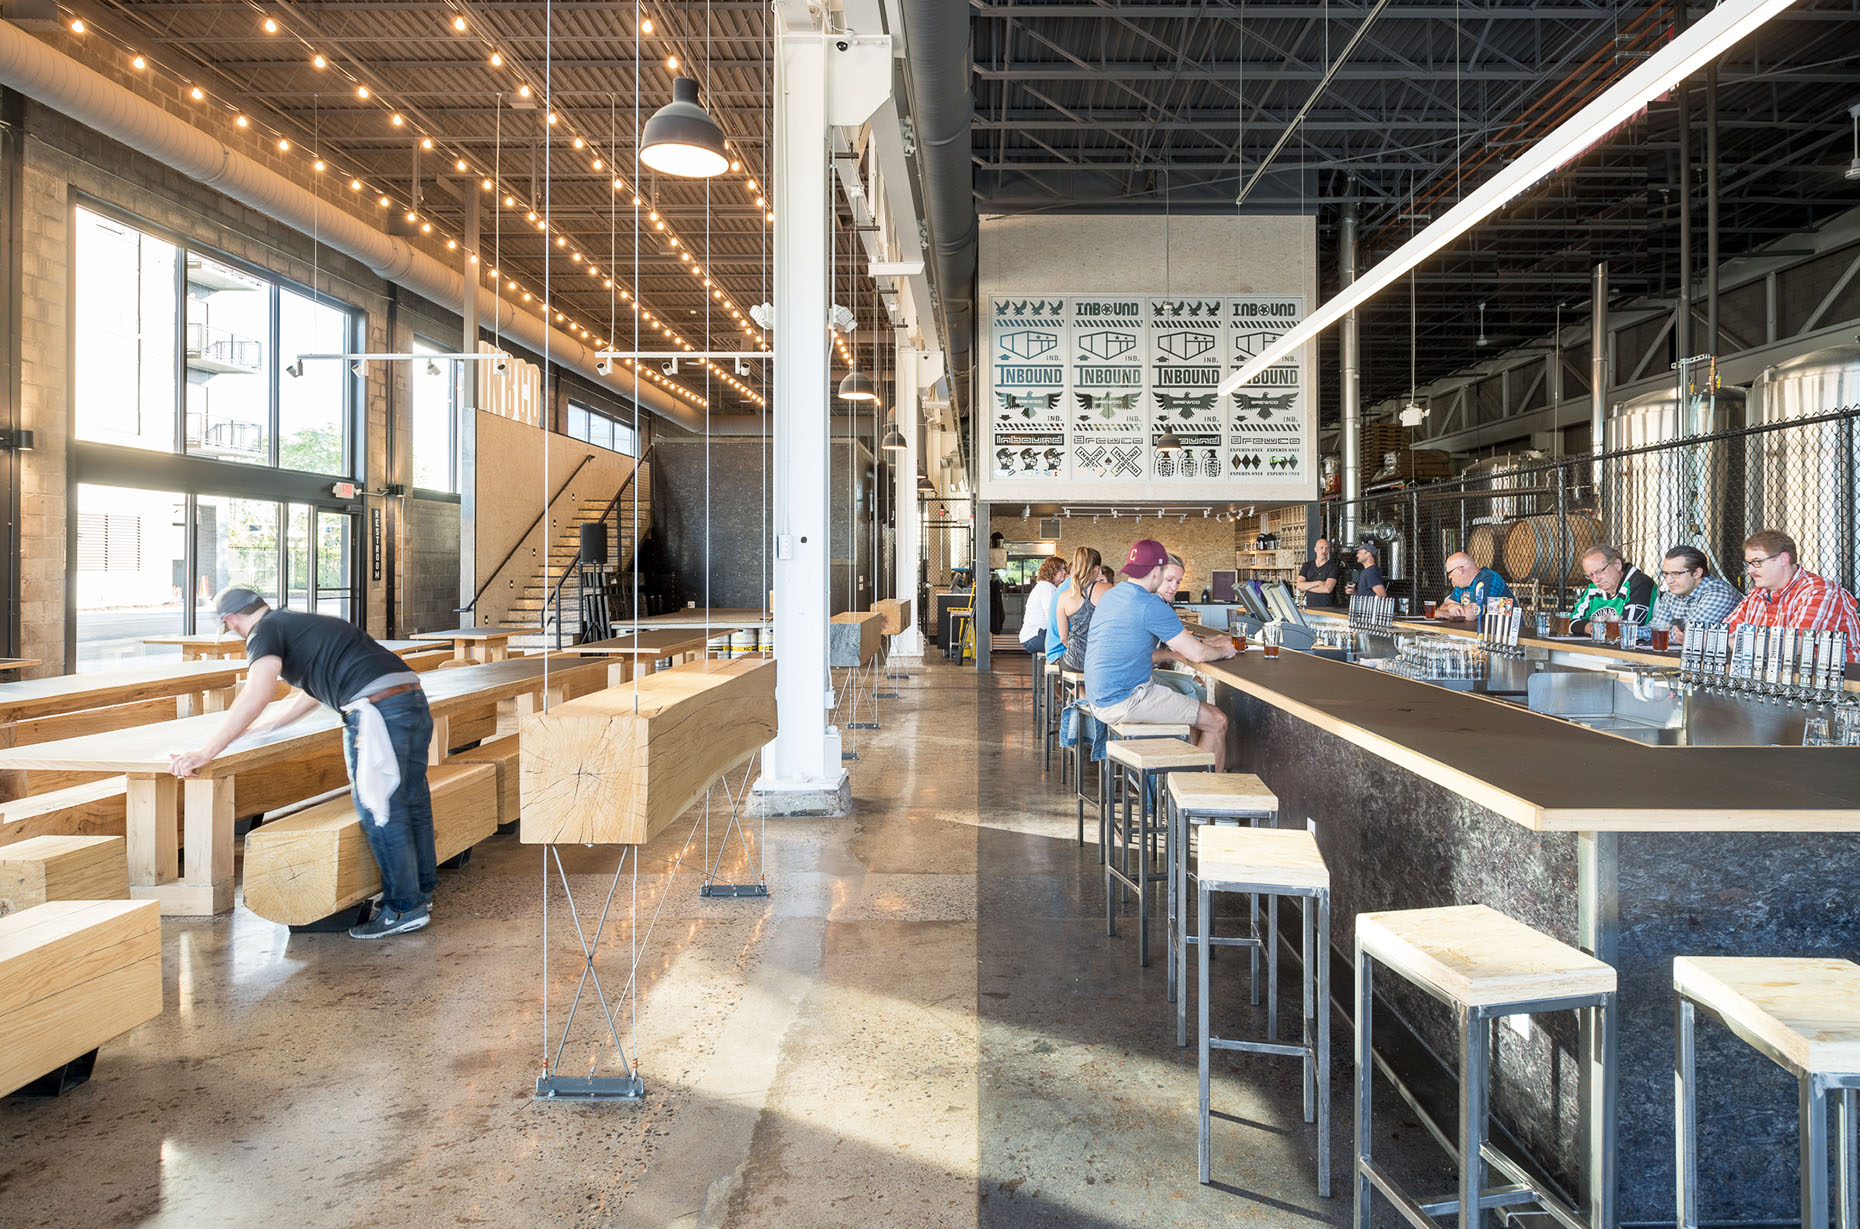 Modern industrial brewery with custom wood tables and standing drink rails.